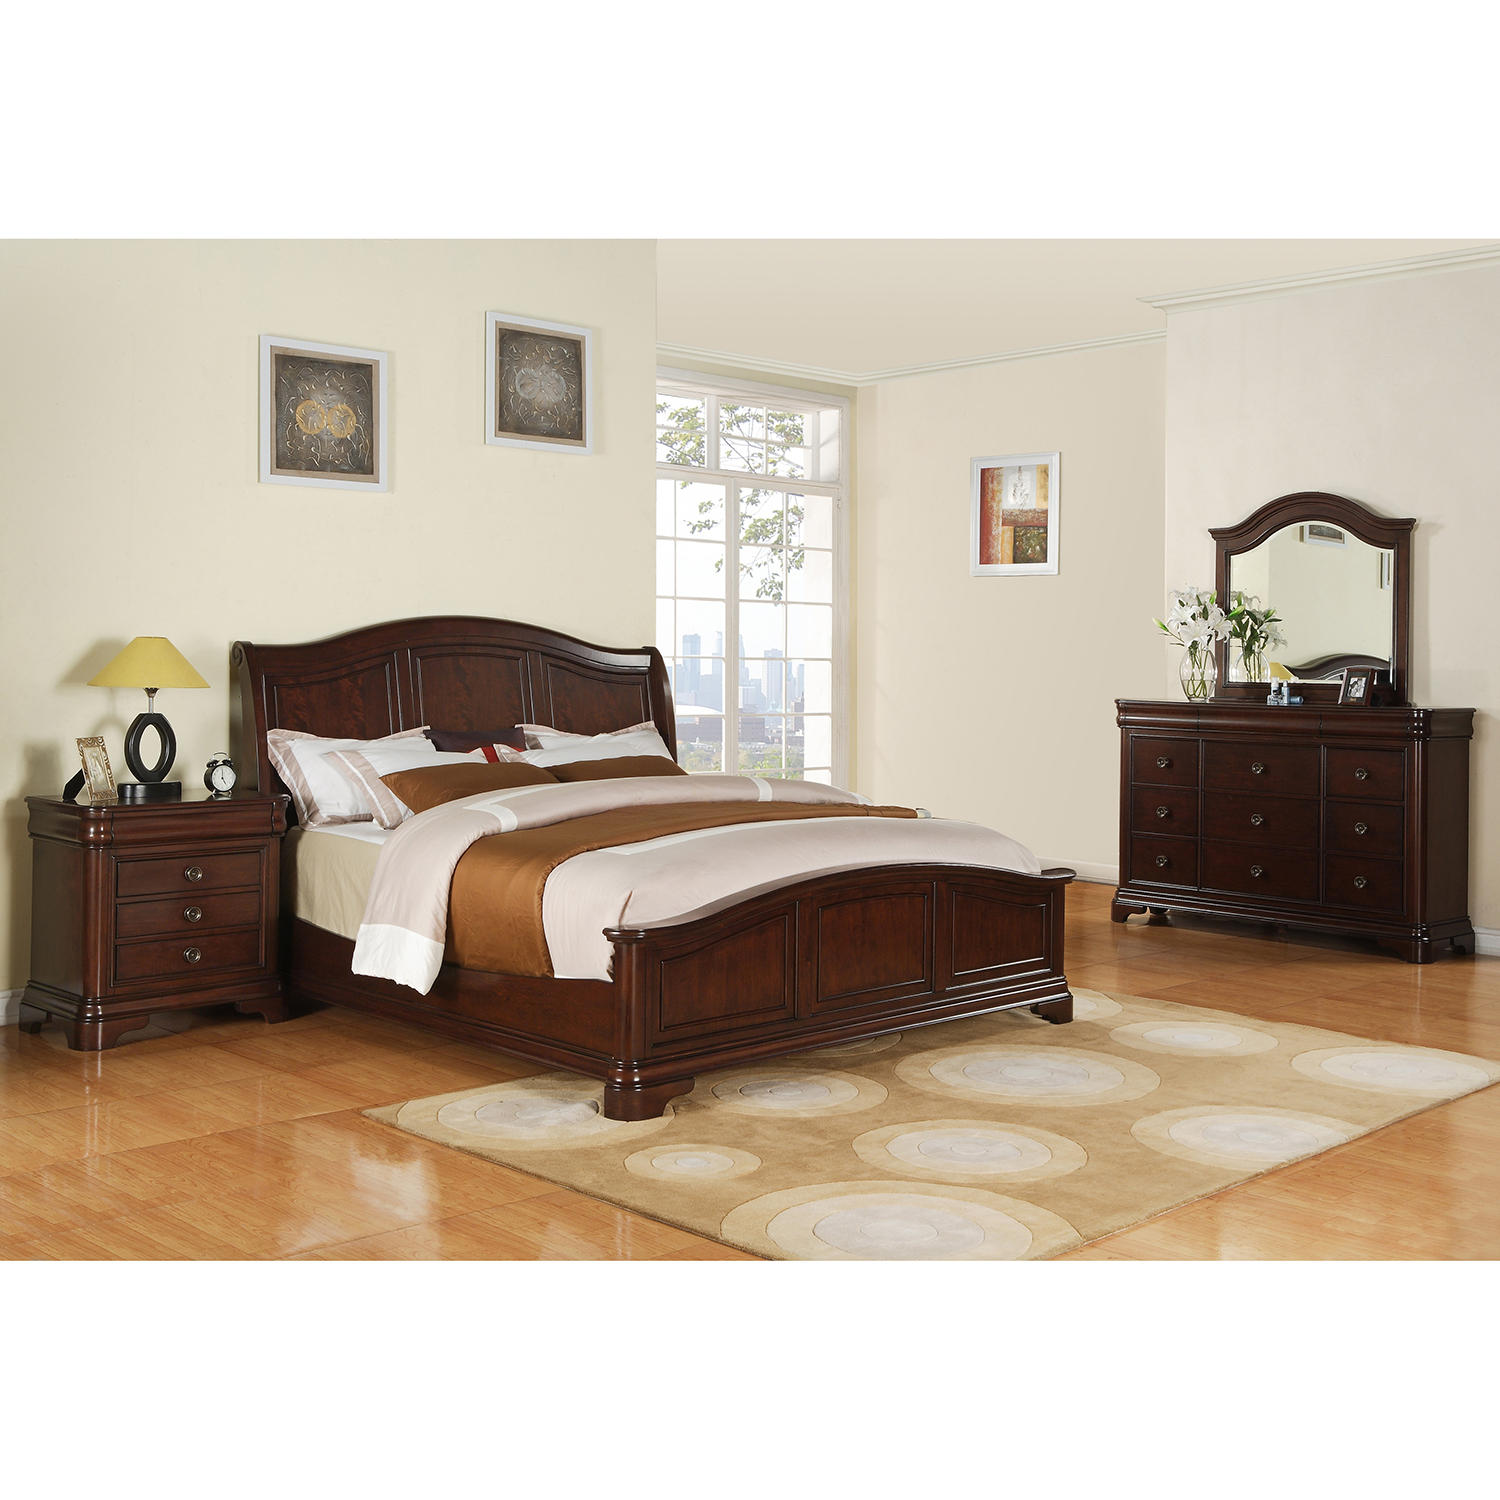 Conley 6 Piece King Bedroom Set with Traditional Cherry Finish